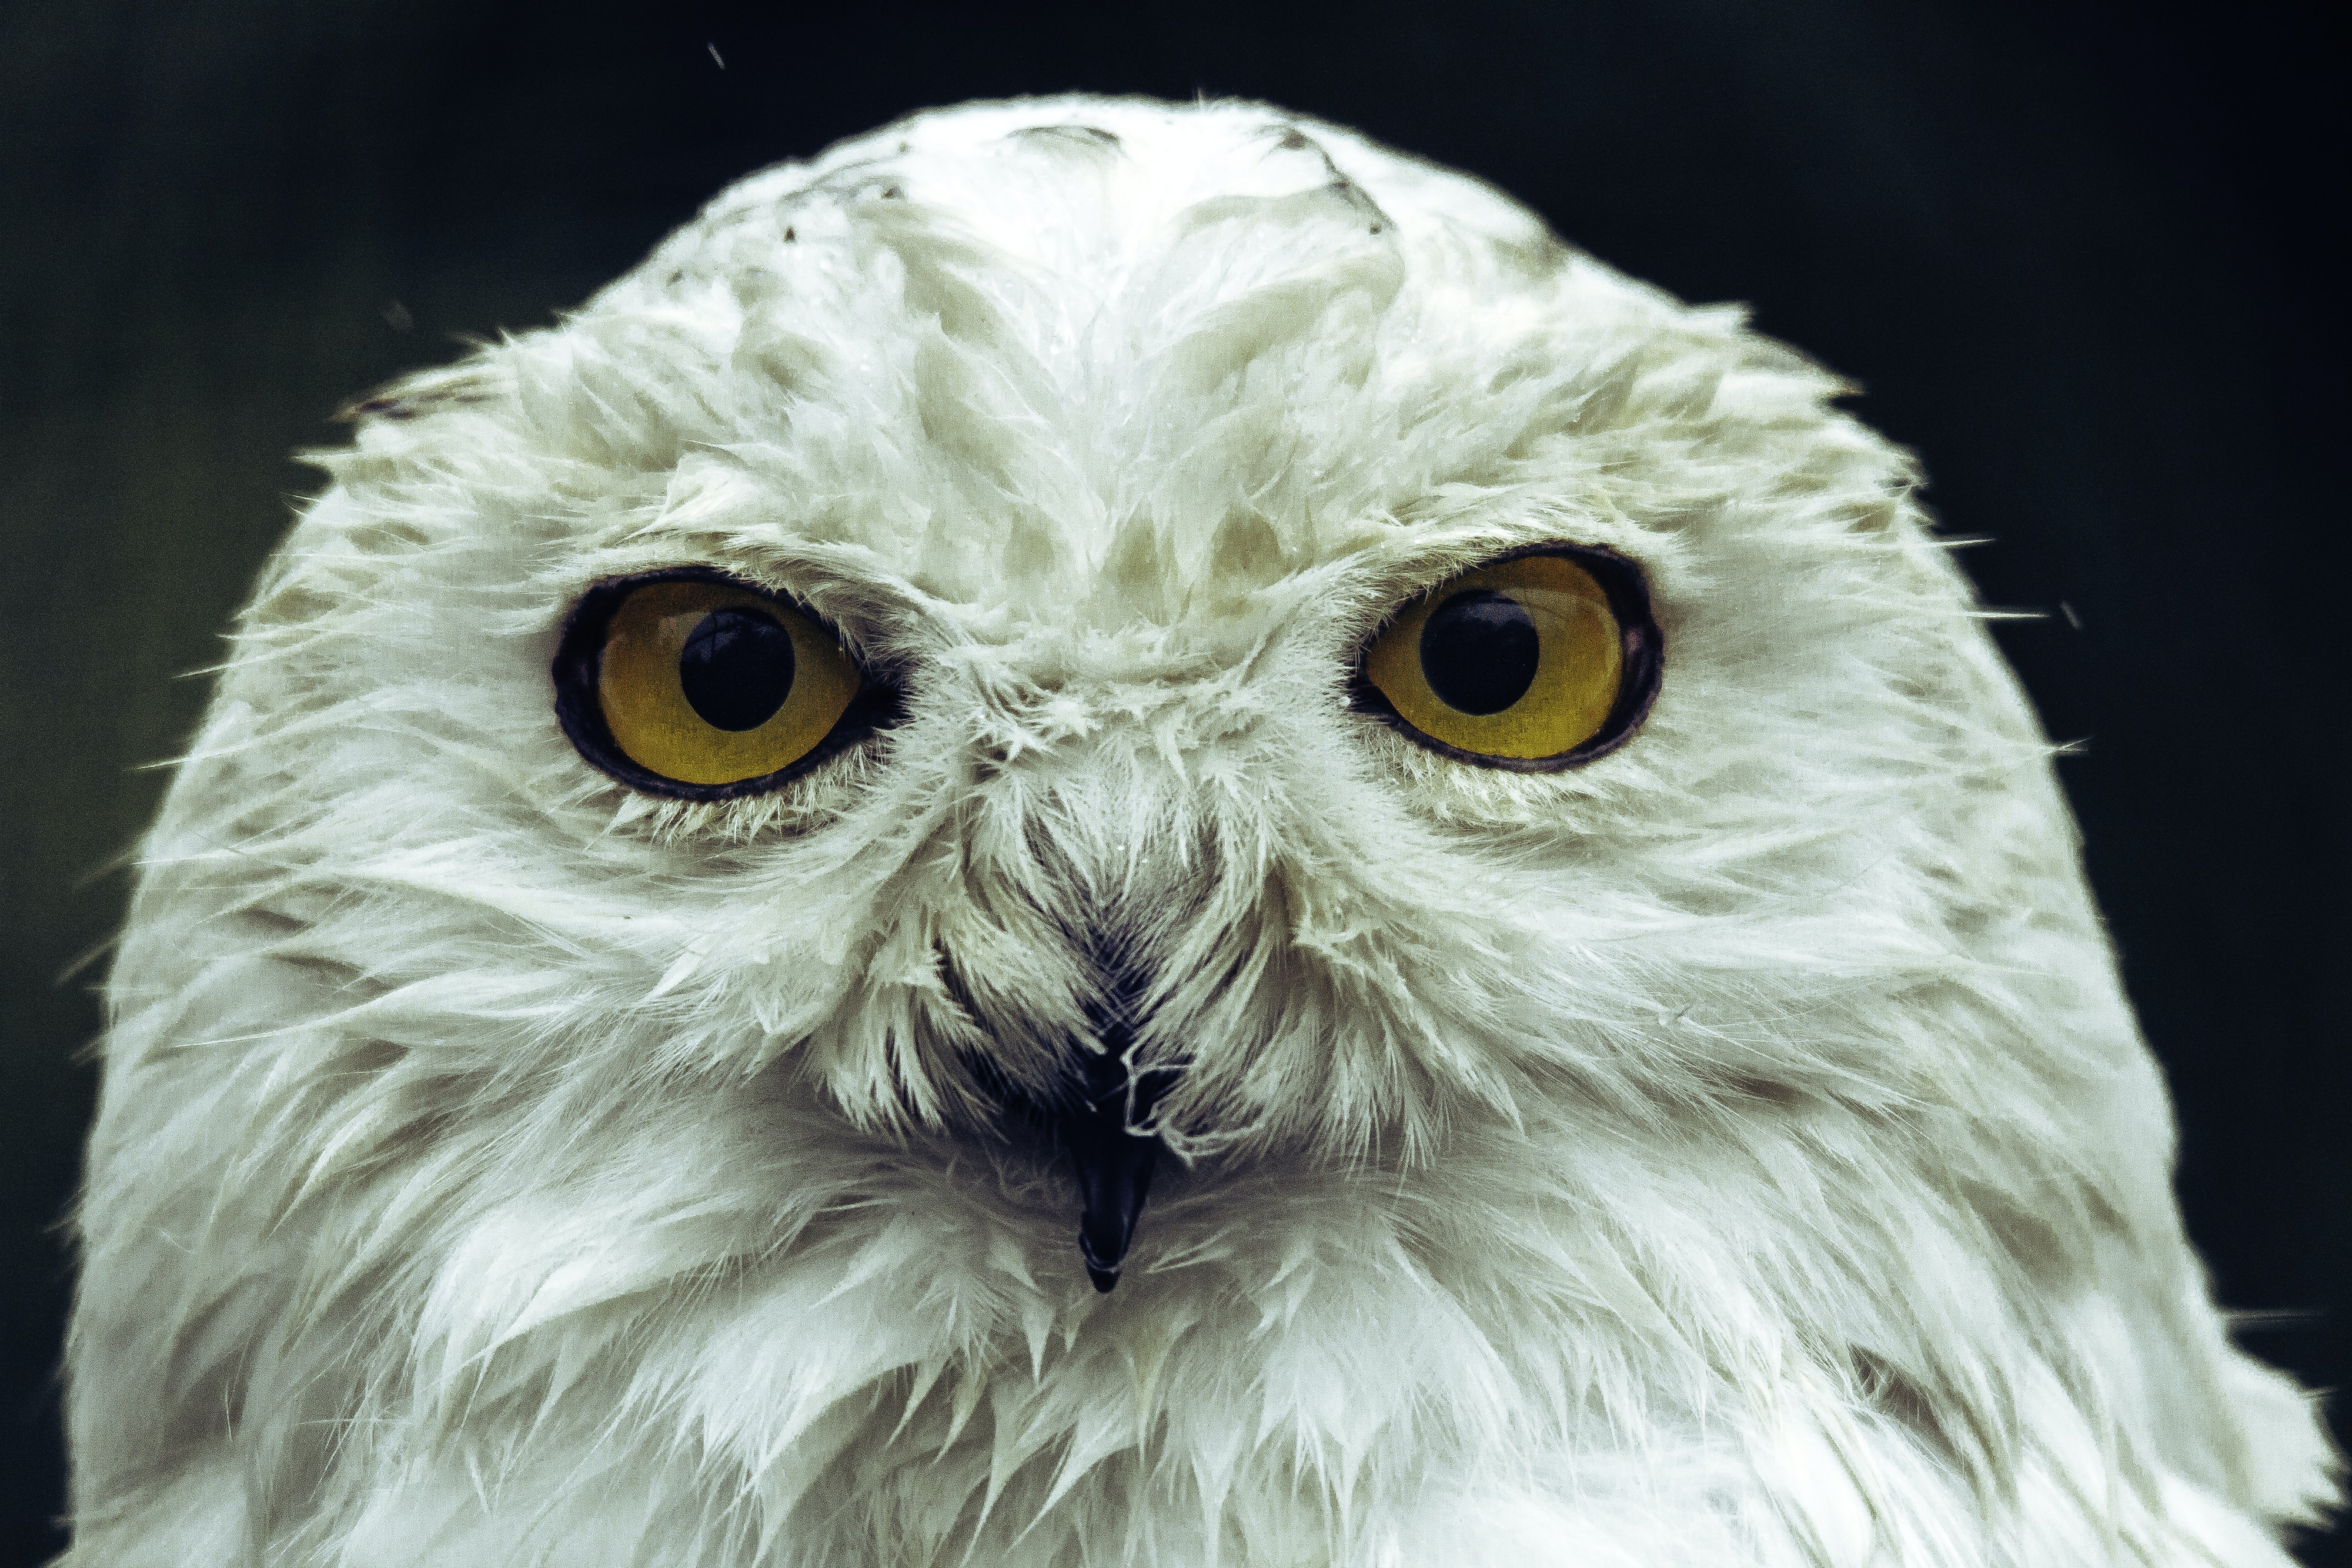 A white owl with orange eyes at Guldborgsund Zoo & Botanisk Have